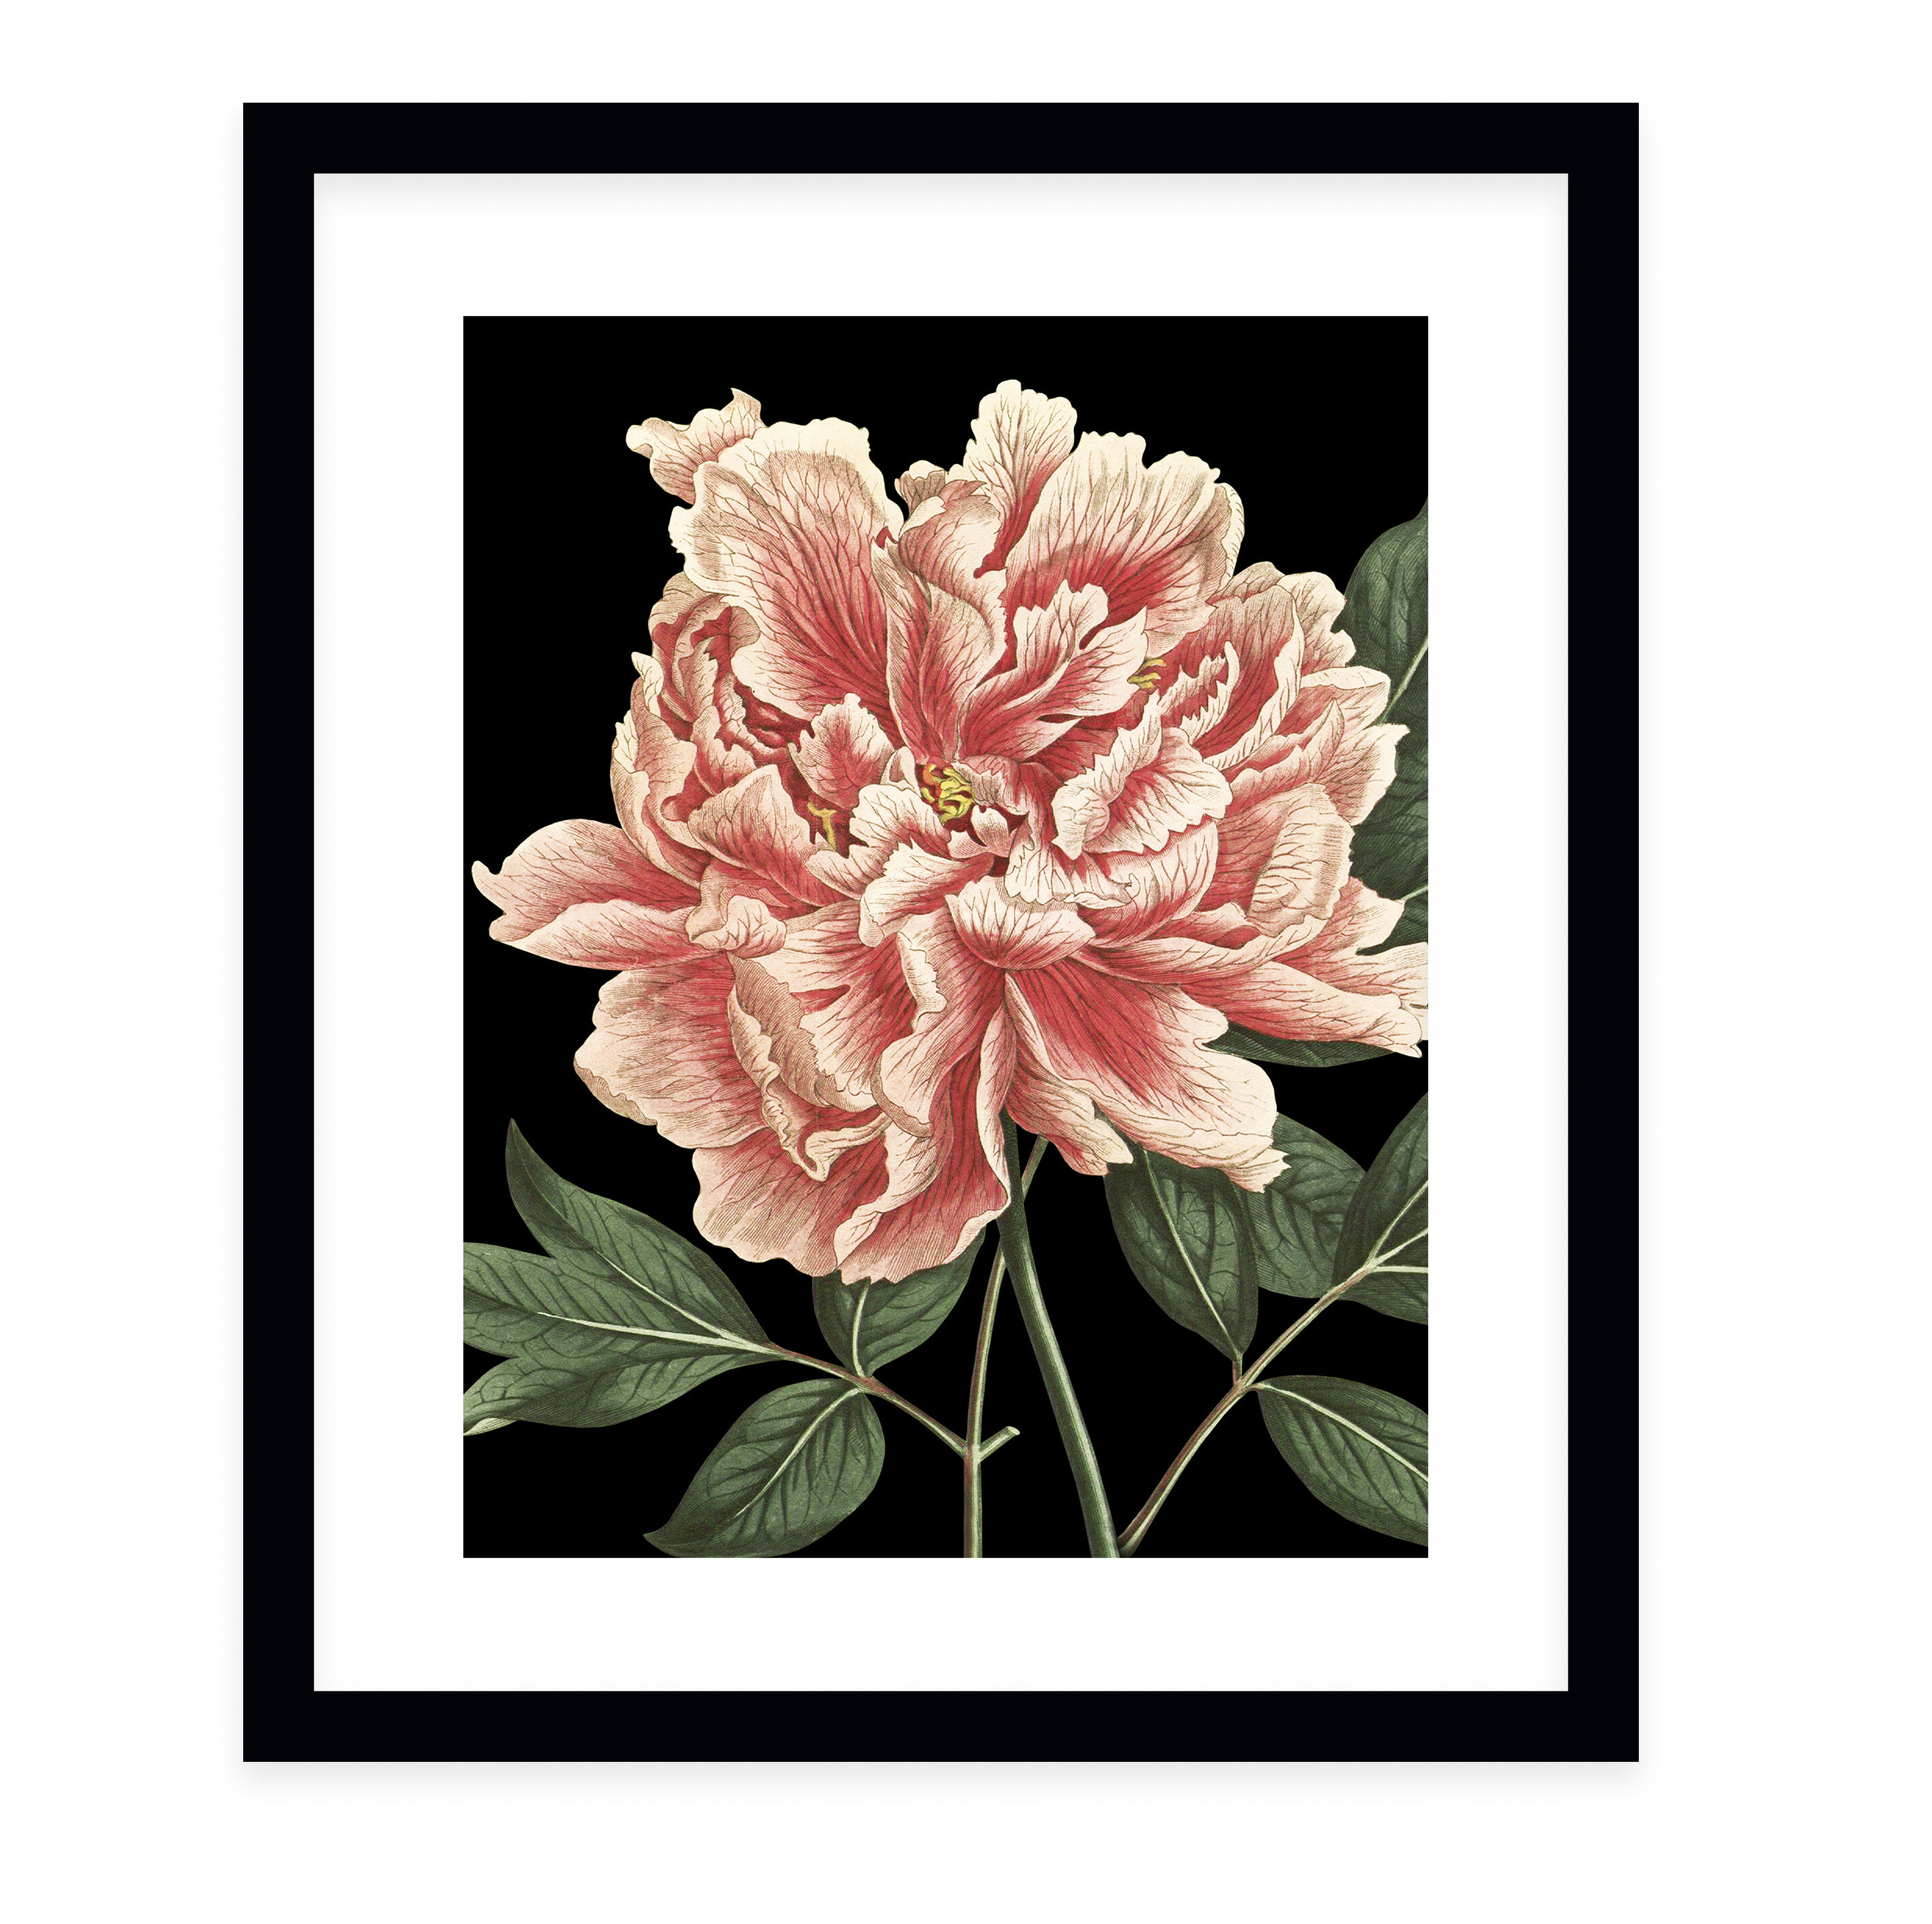 Charlton Home Flower One Black By Terri Ellis Picture Frame Graphic Art Print On Paper Wayfair